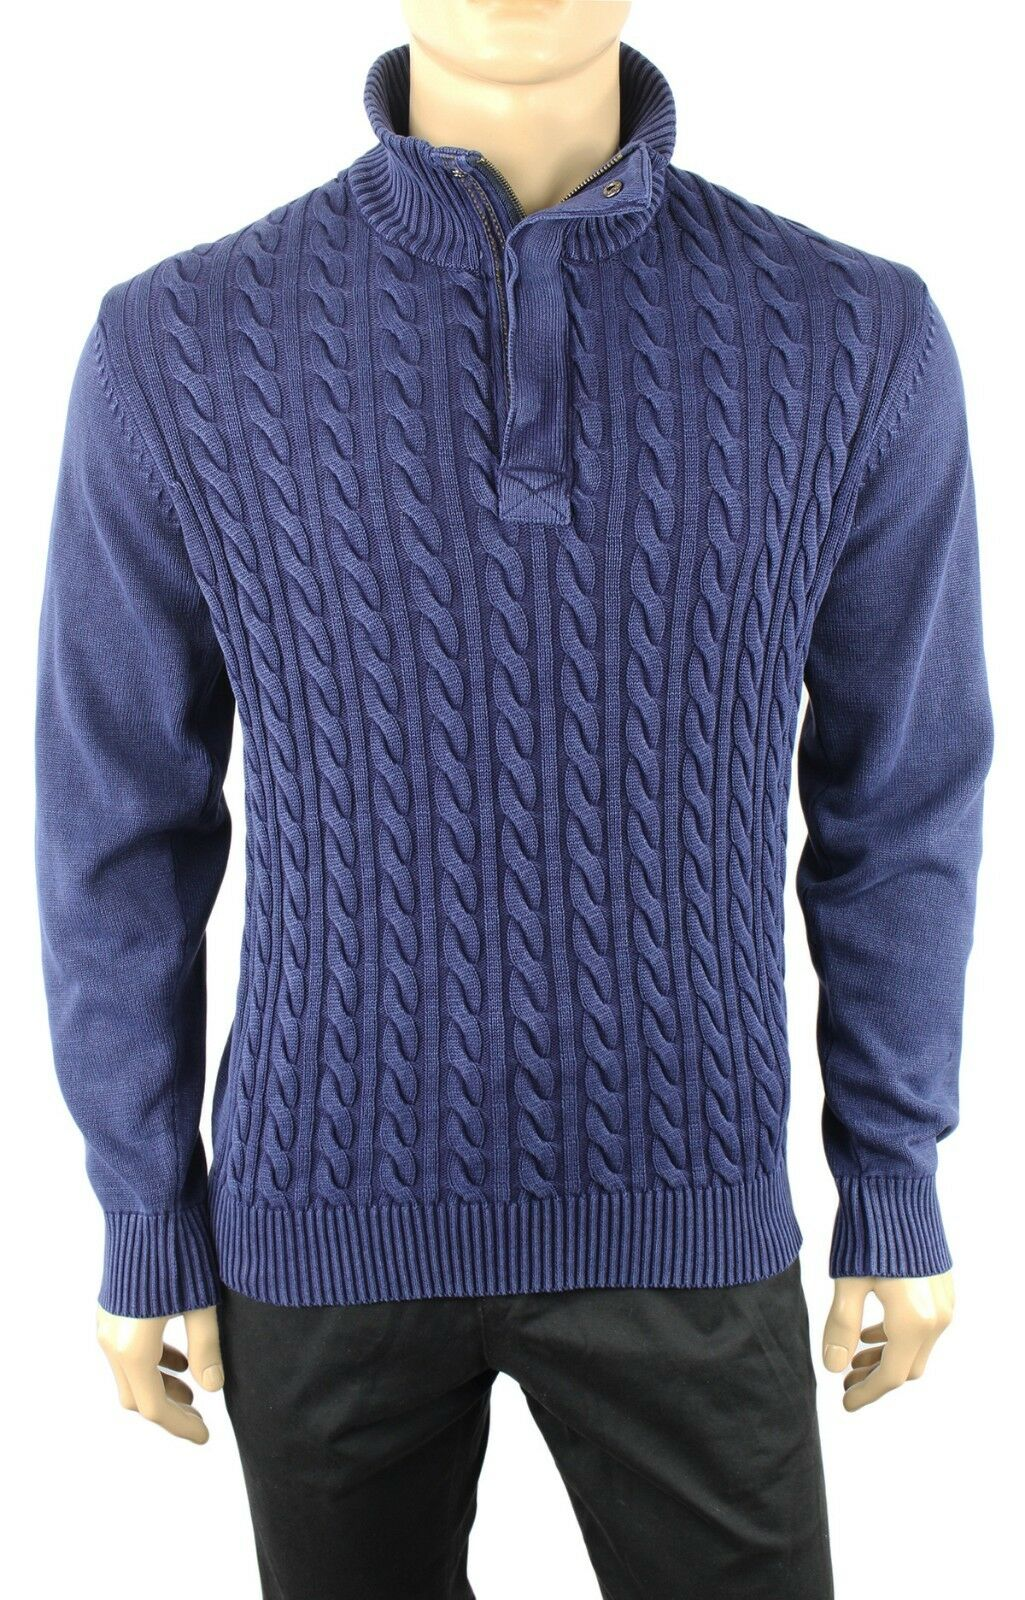 NEW WEATHERPROOF VINTAGE HALF ZIP STONEWASHED blueE CABLE KNIT SWEATER S